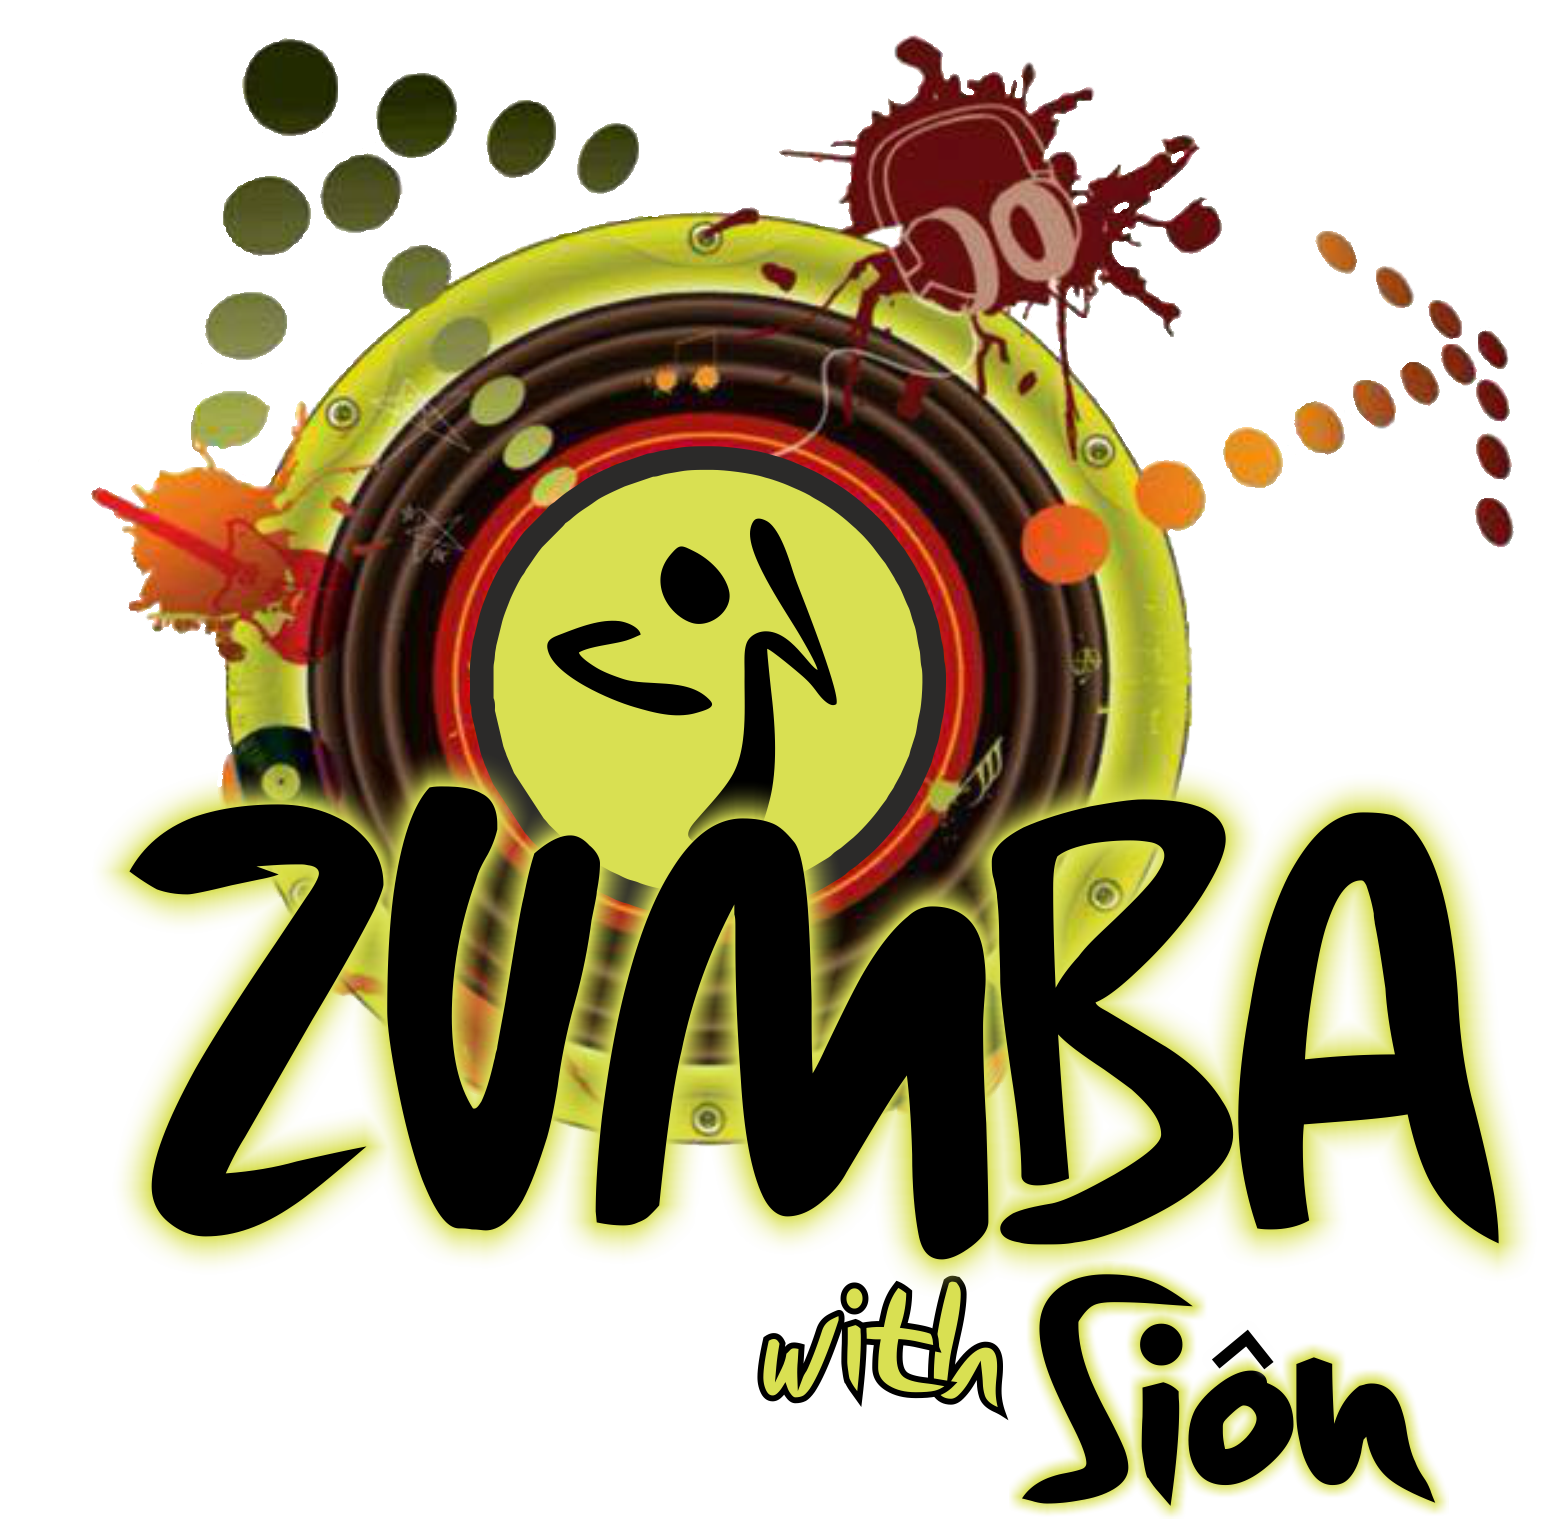 Zumba fitness png. Club gym personal trainer